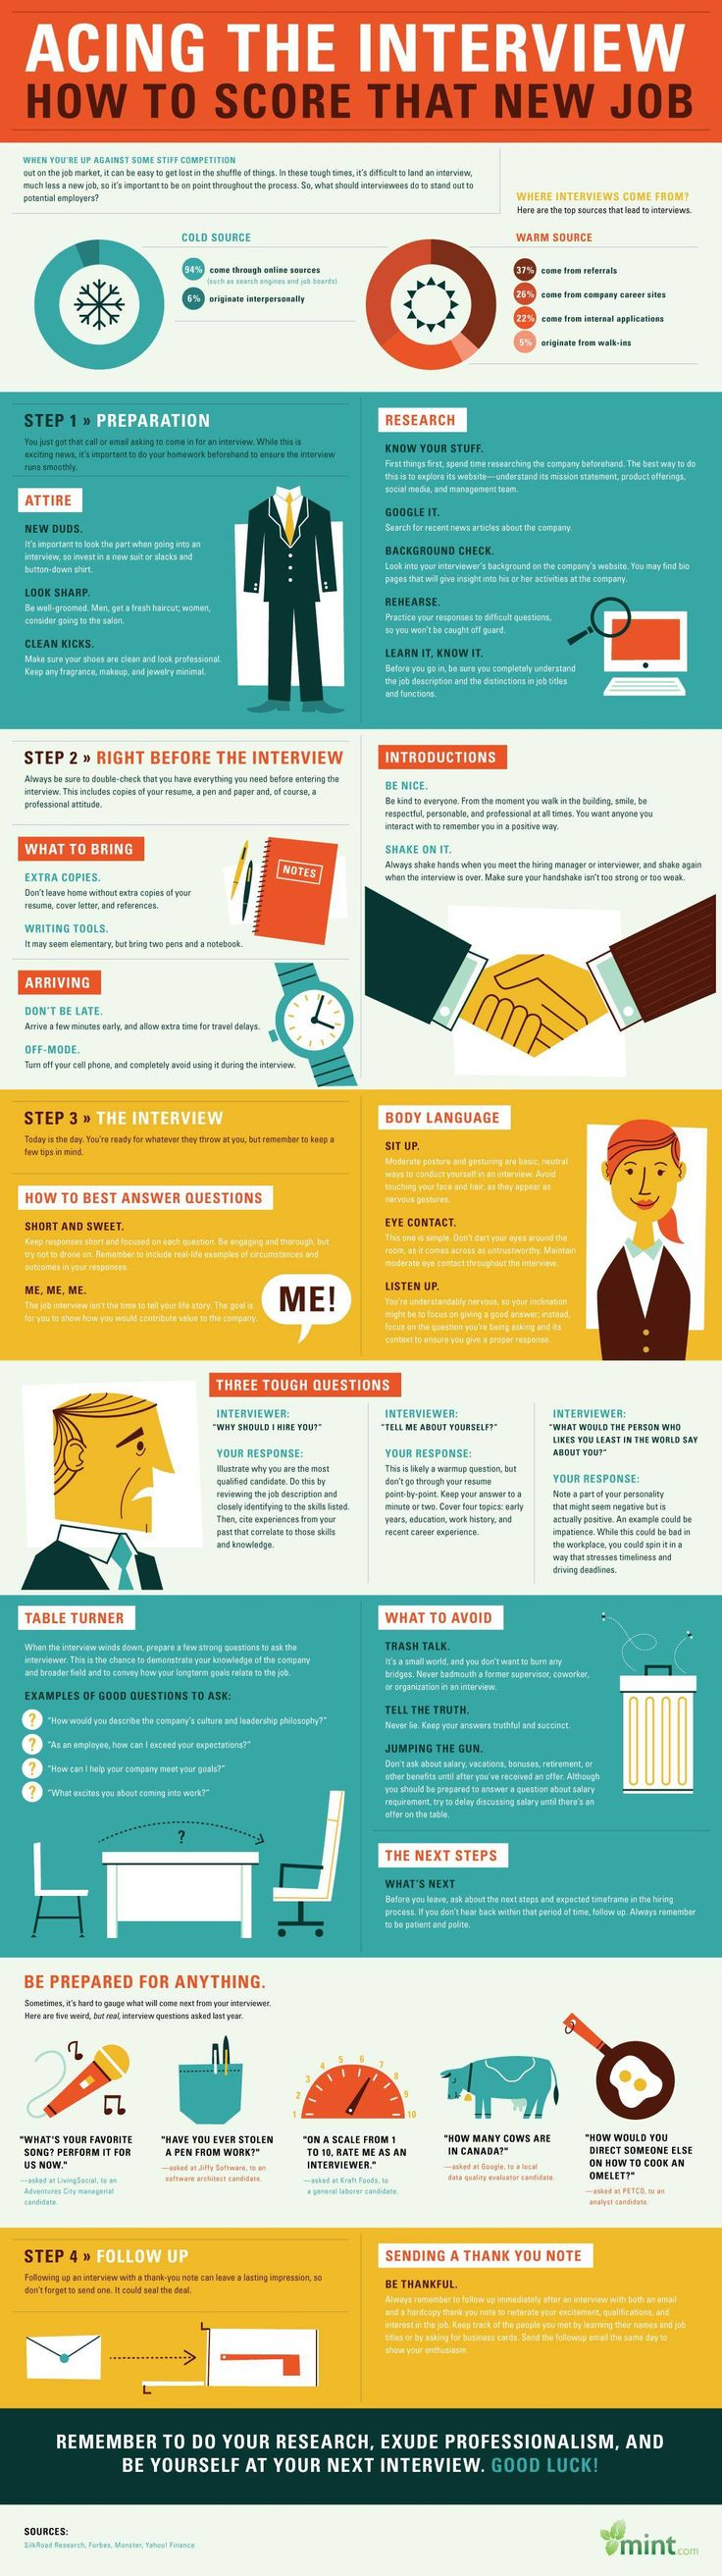 how to ace a job interview - How To Have A Good Interview Tips For A Good Interview